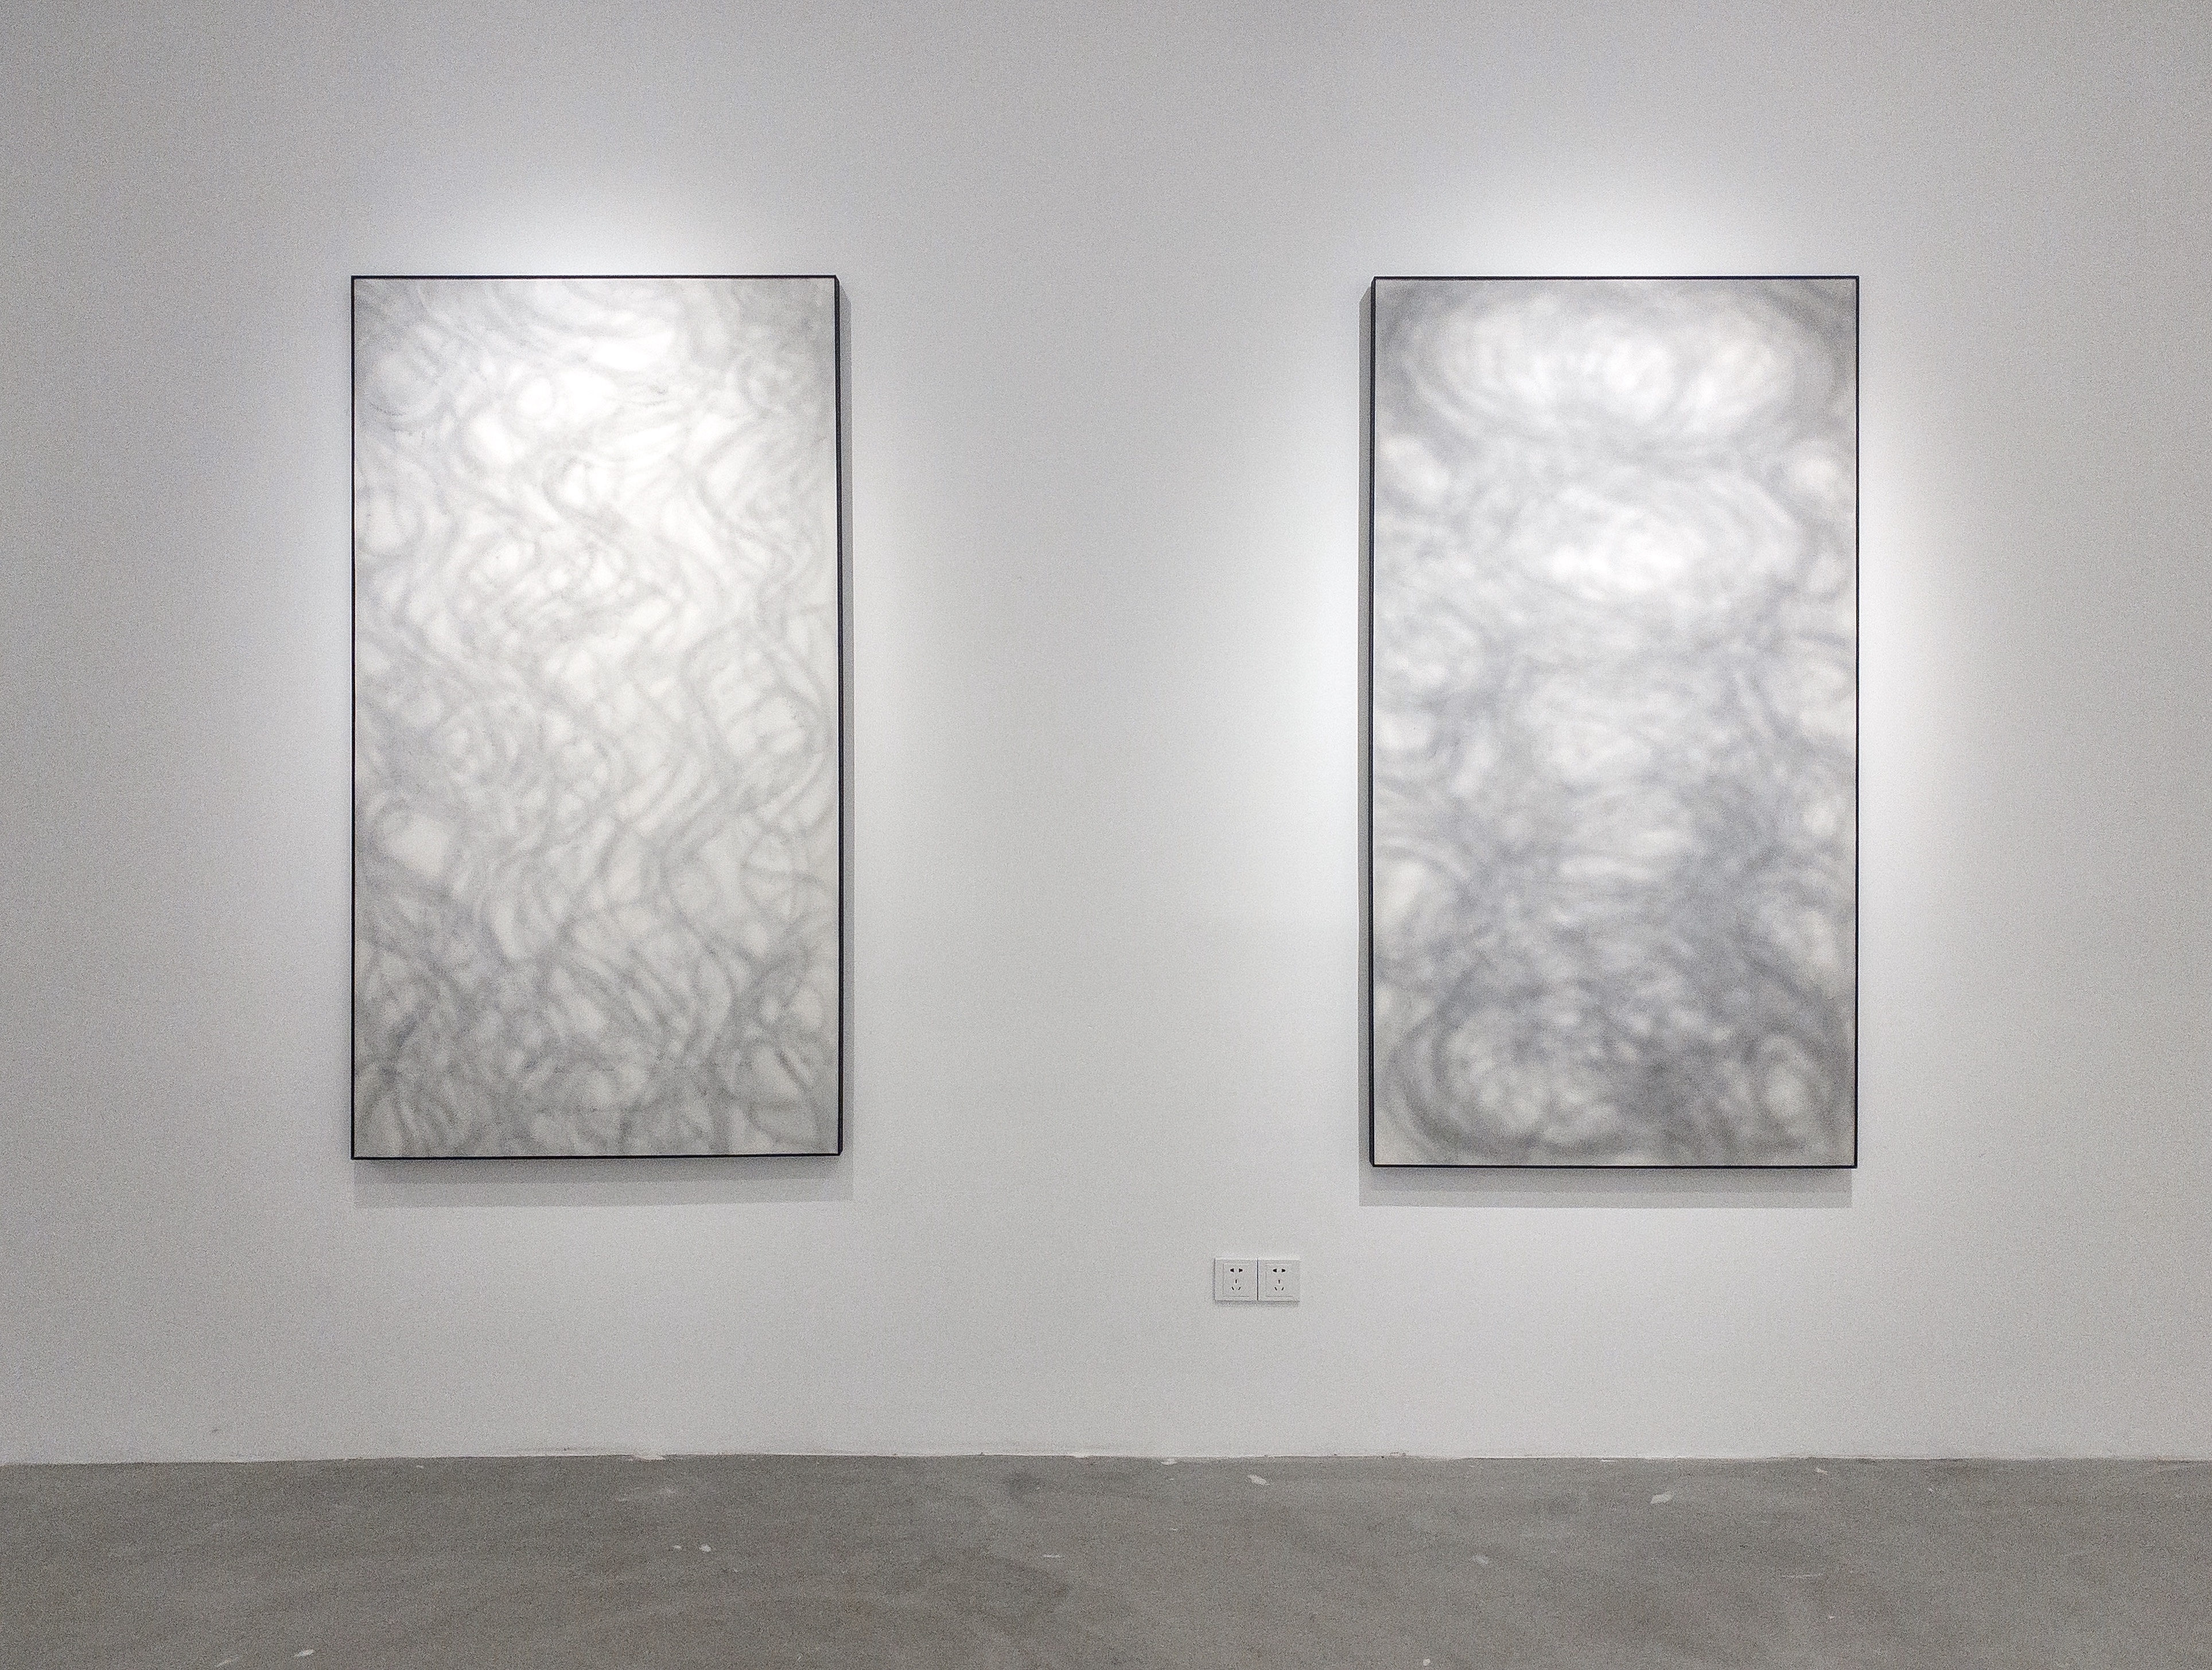 Wang Chao,Concealed NO.3 (left) & Concealed NO.4 (right)